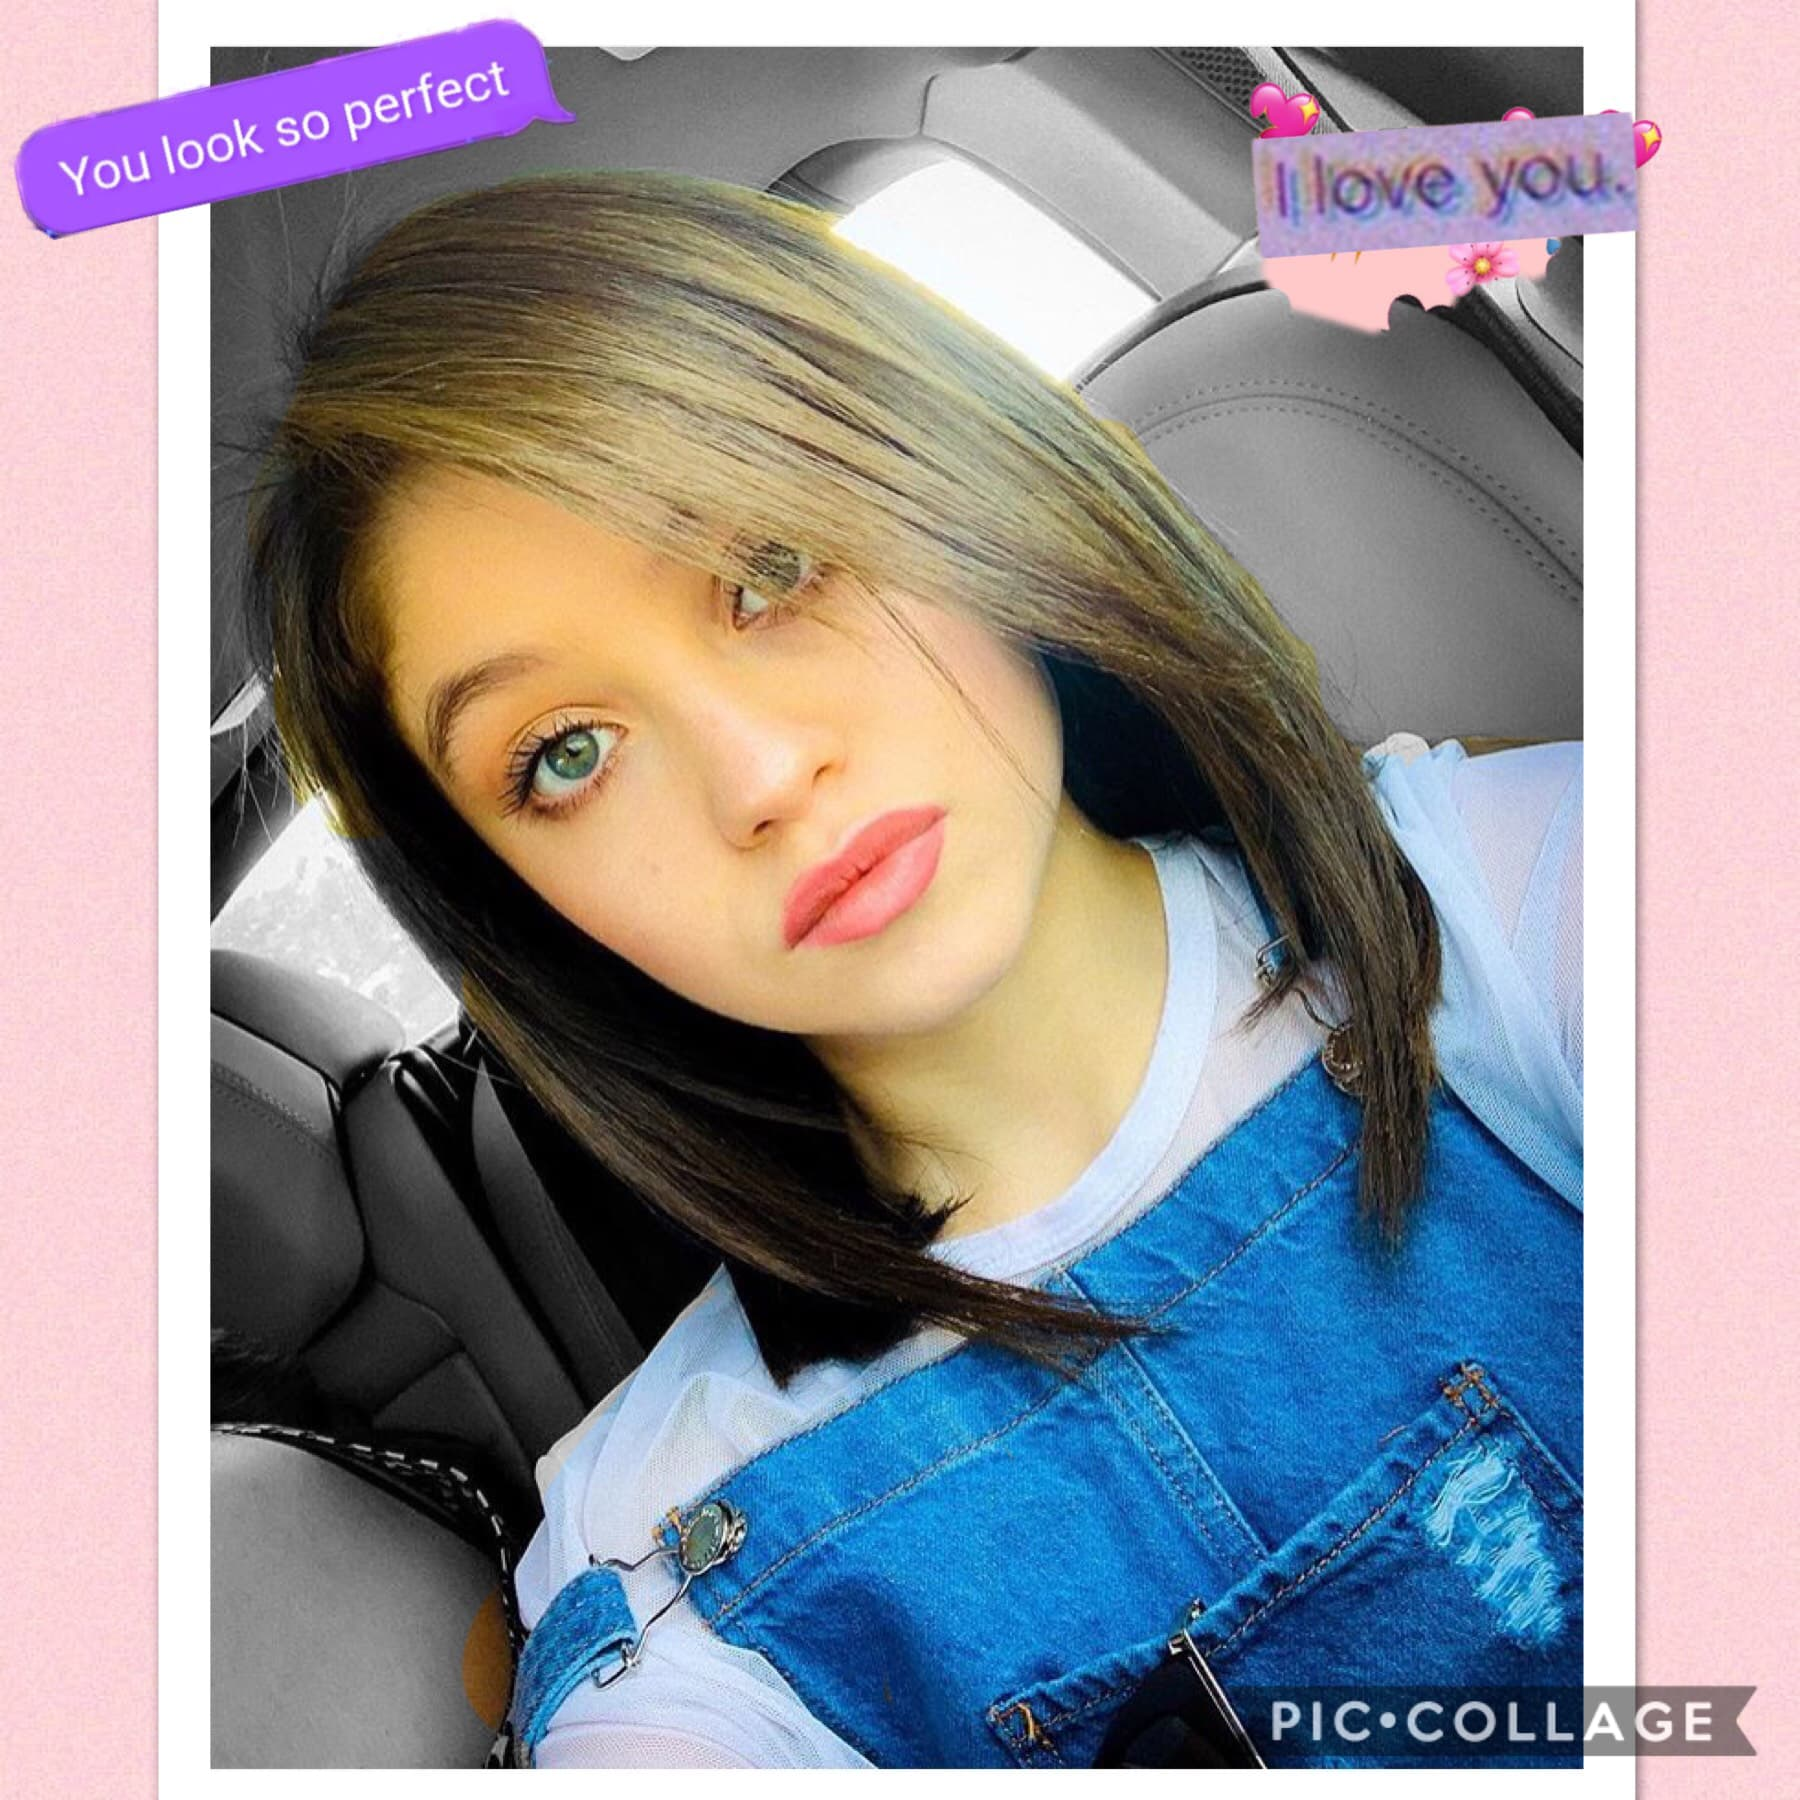 i love Karol Sevilla! This is my first post, hope u like it❤️ pls give me feedback😘